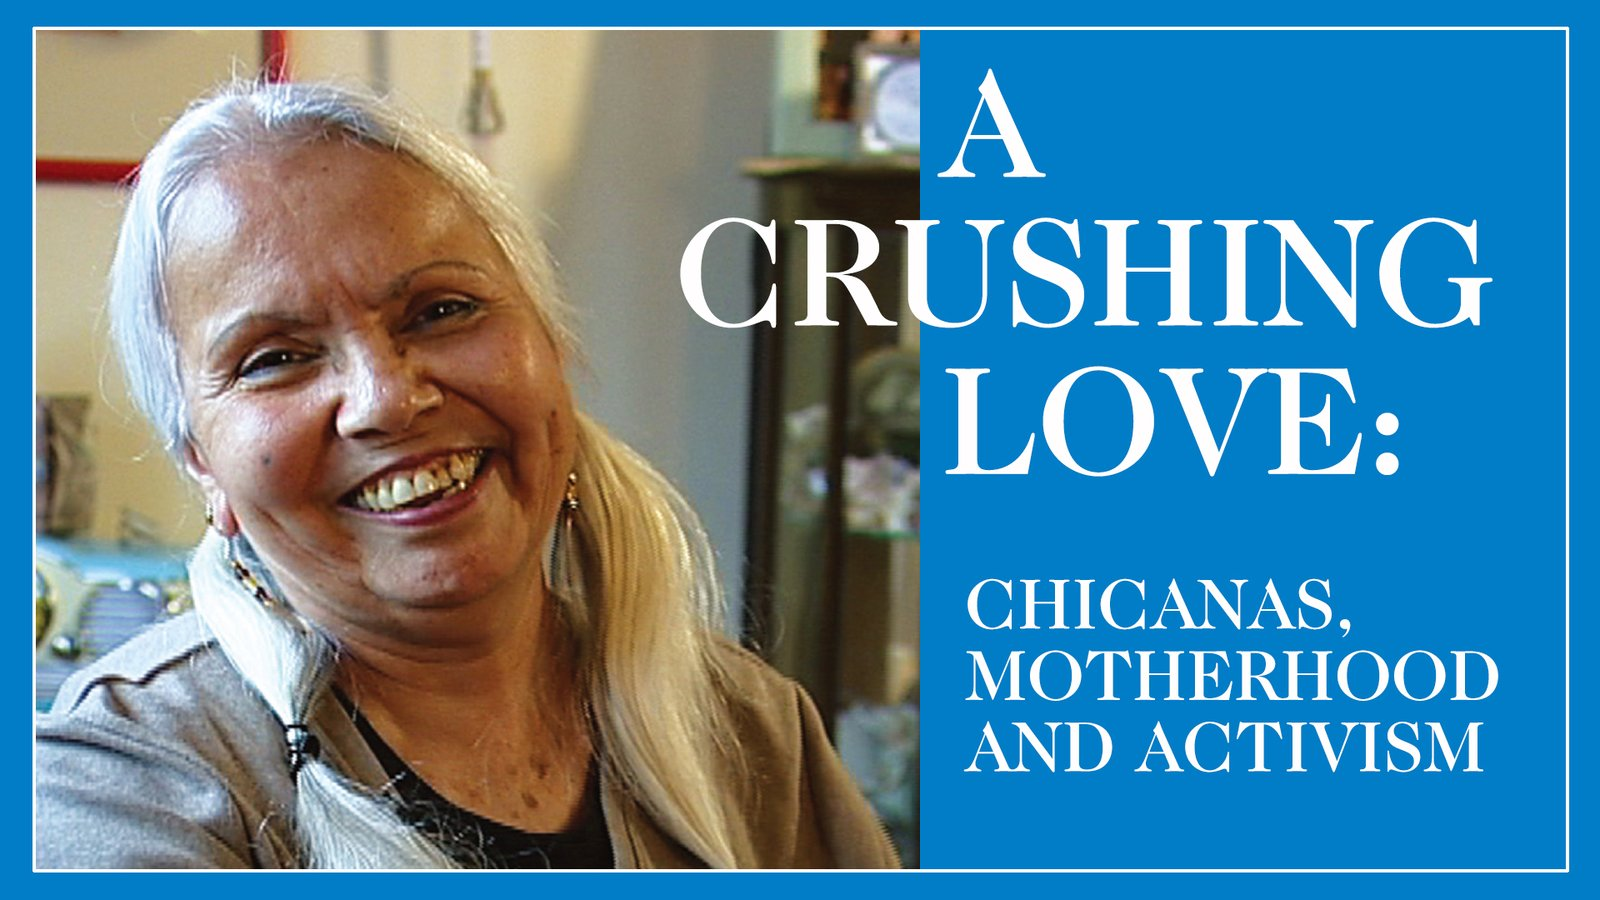 A Crushing Love - Chicanas, Motherhood and Activism